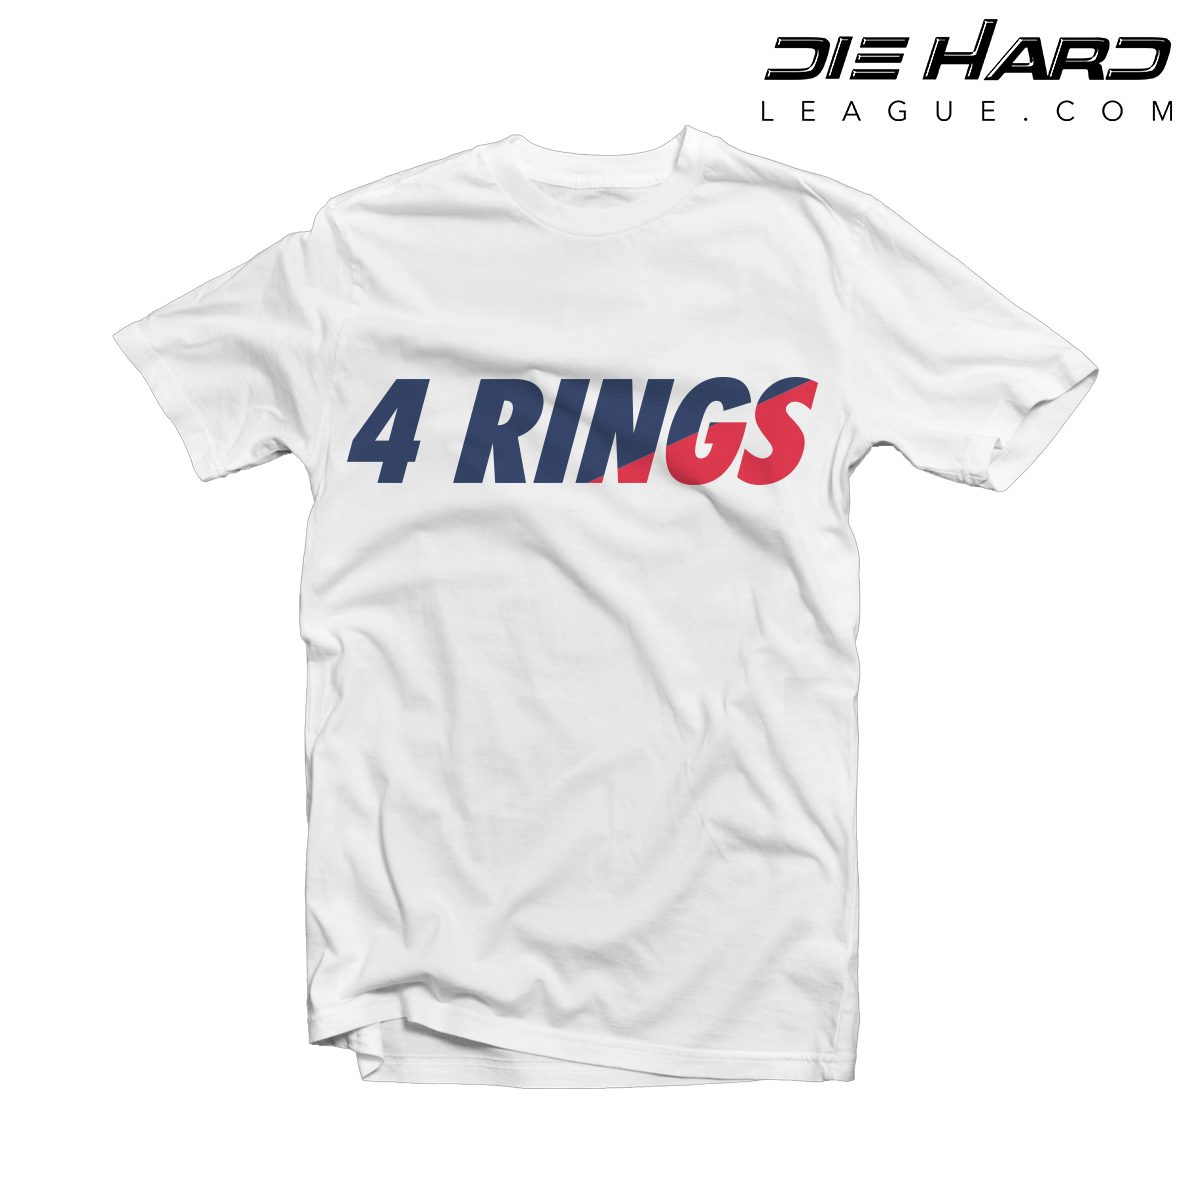 New England Patriots T Shirt 4 Rings White Tee Nfl: new england patriots shirts